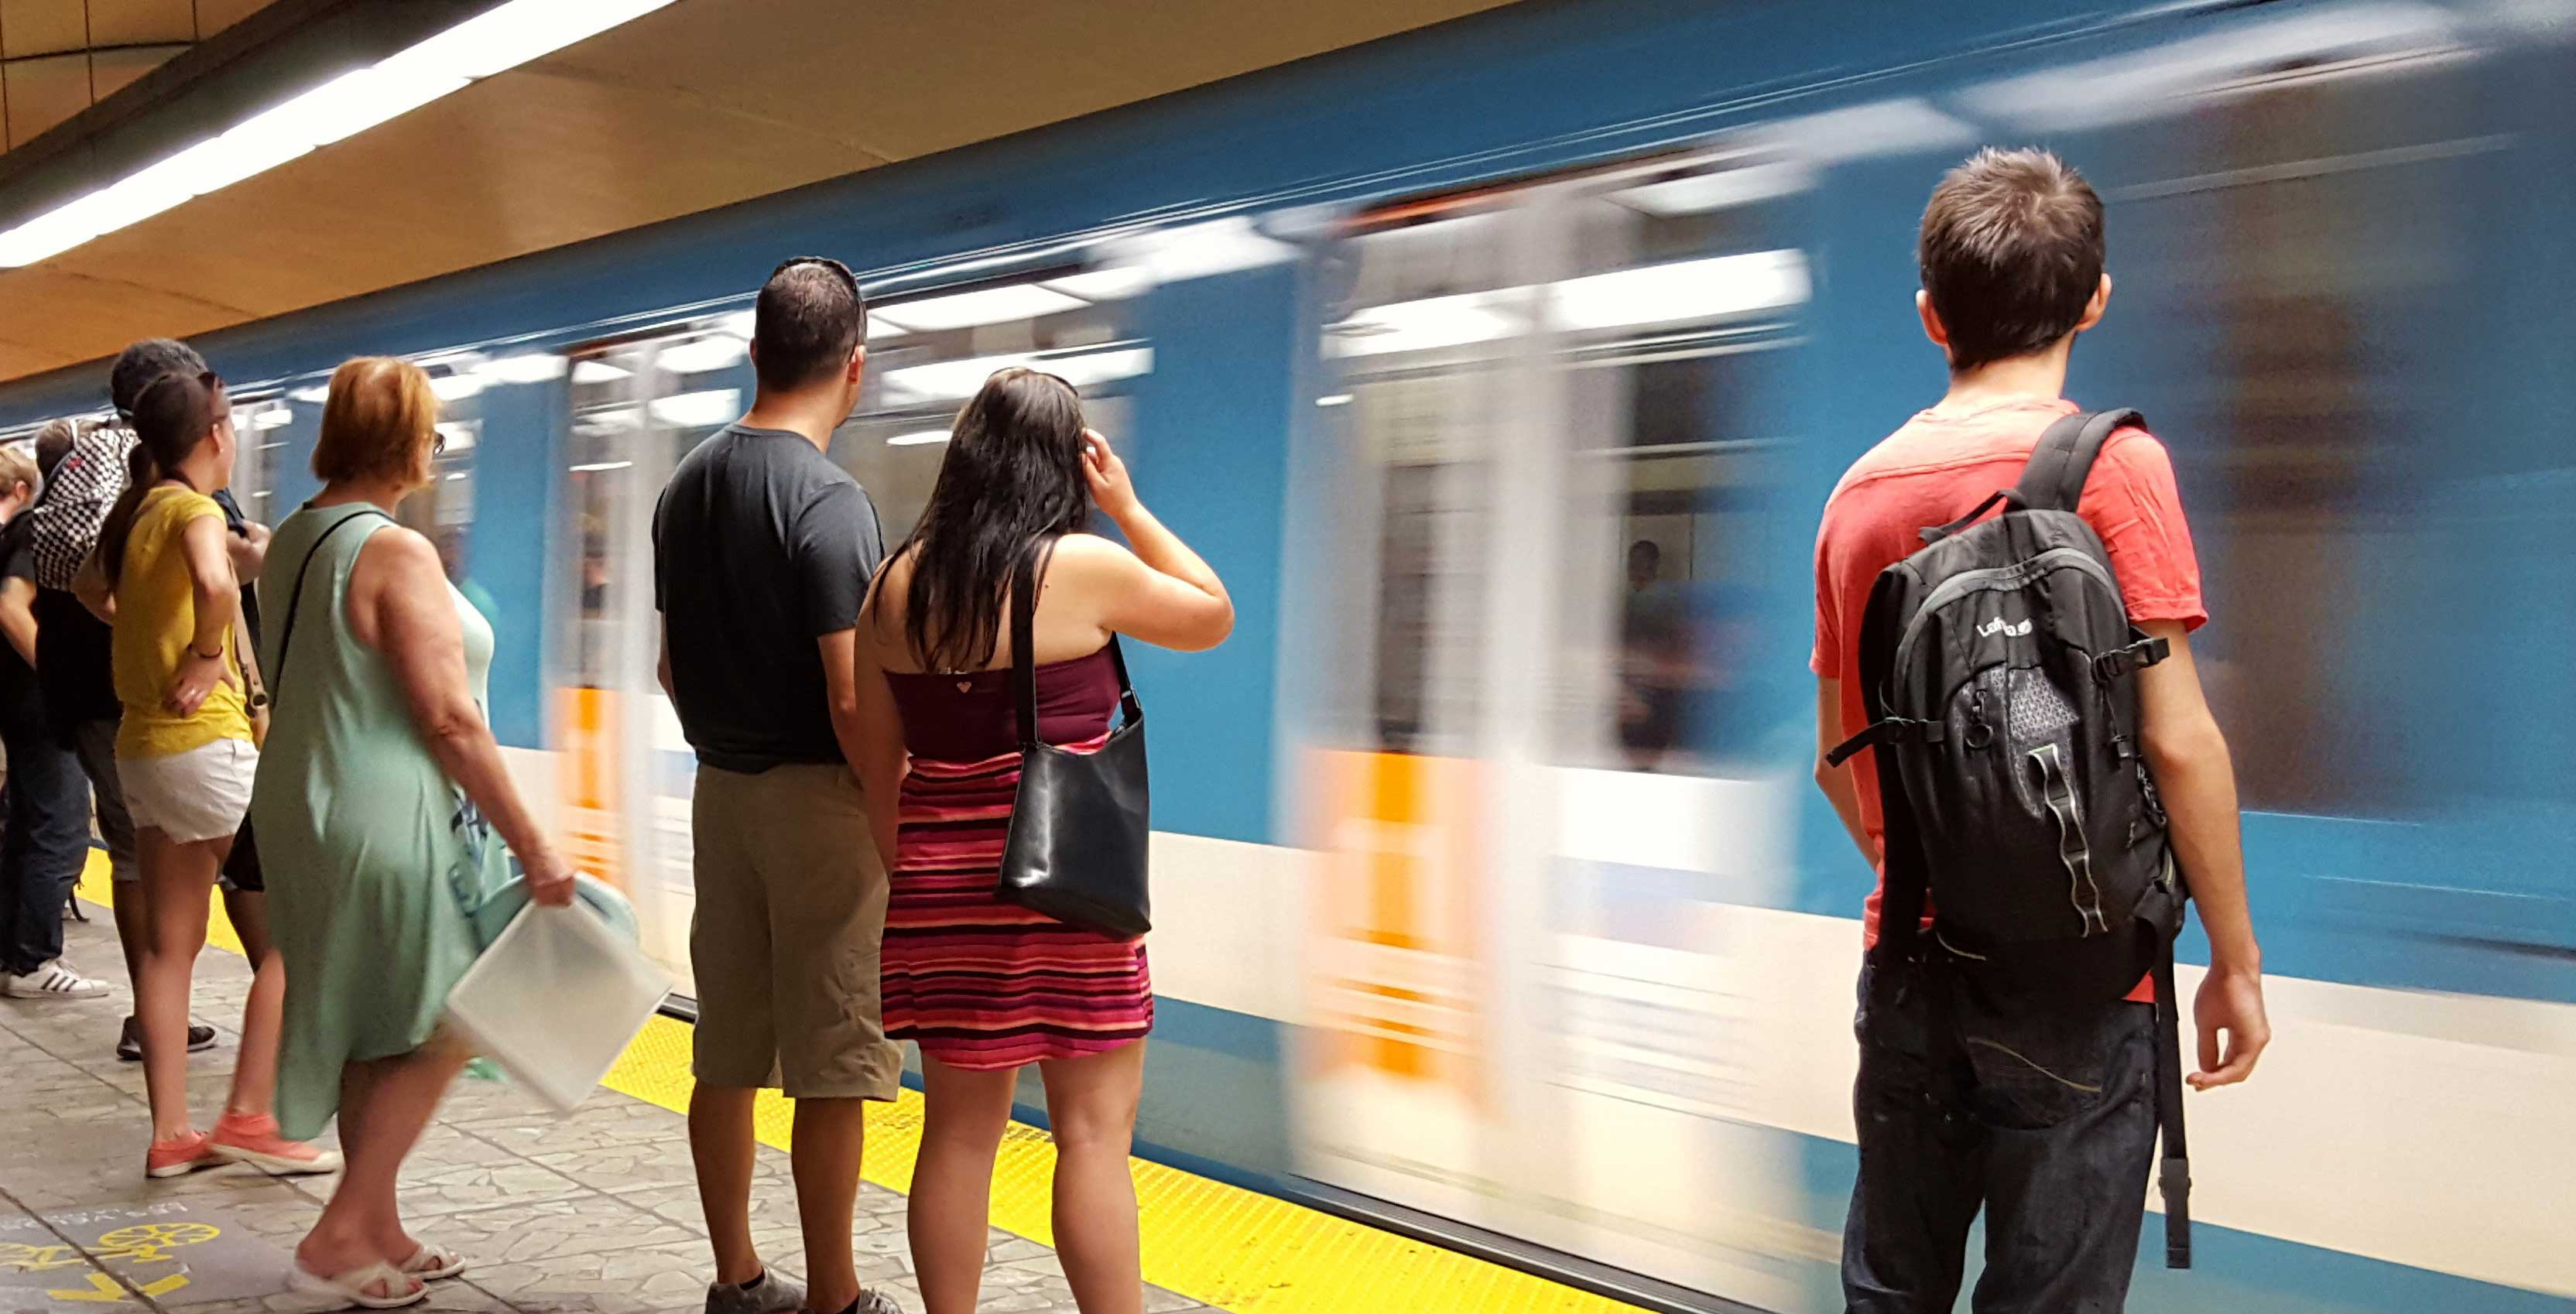 37 out of 68 Montreal Metro stations are now cellular equipped